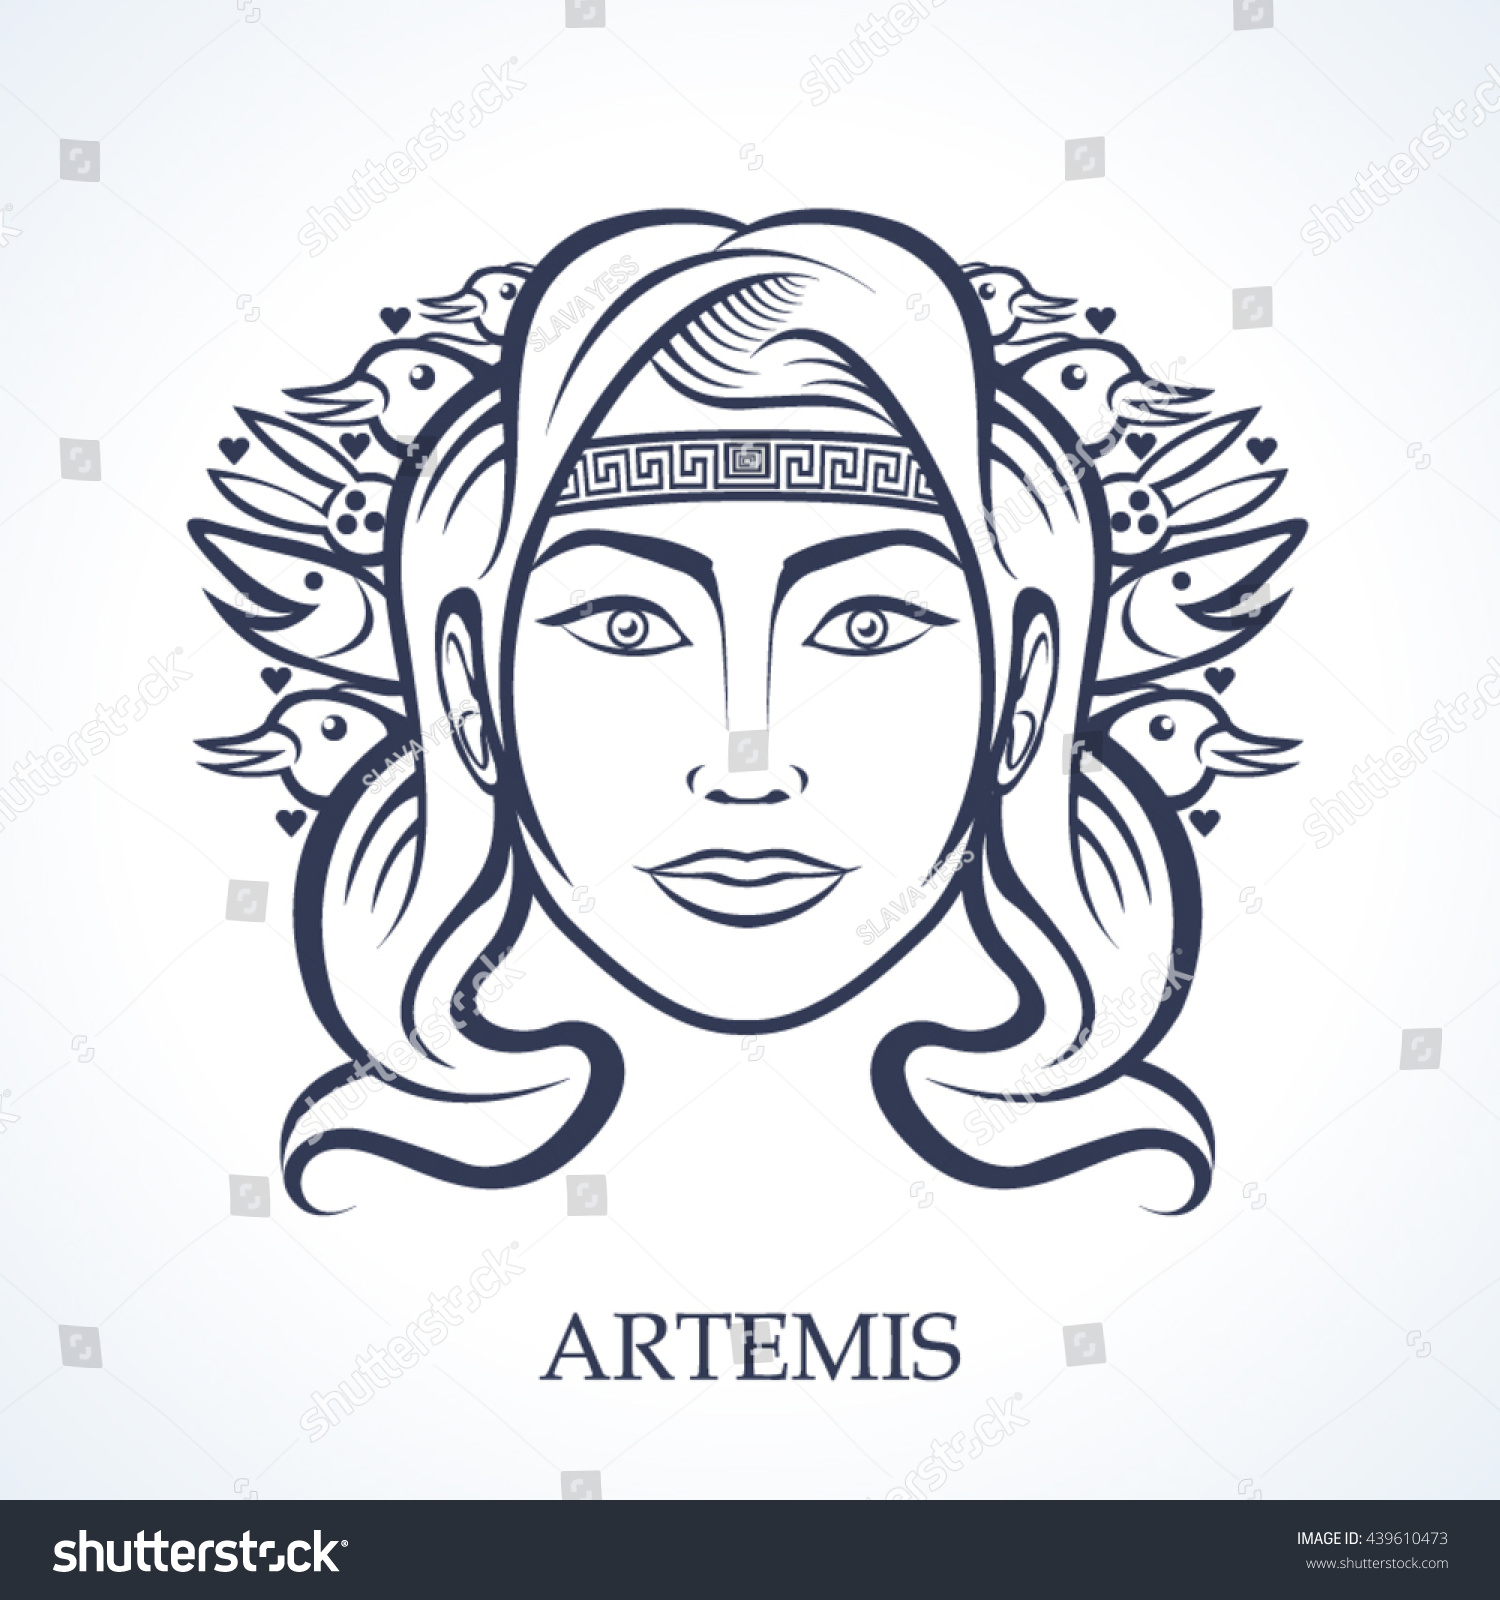 artemis greek goddess hunting stock vector 439610473 shutterstock